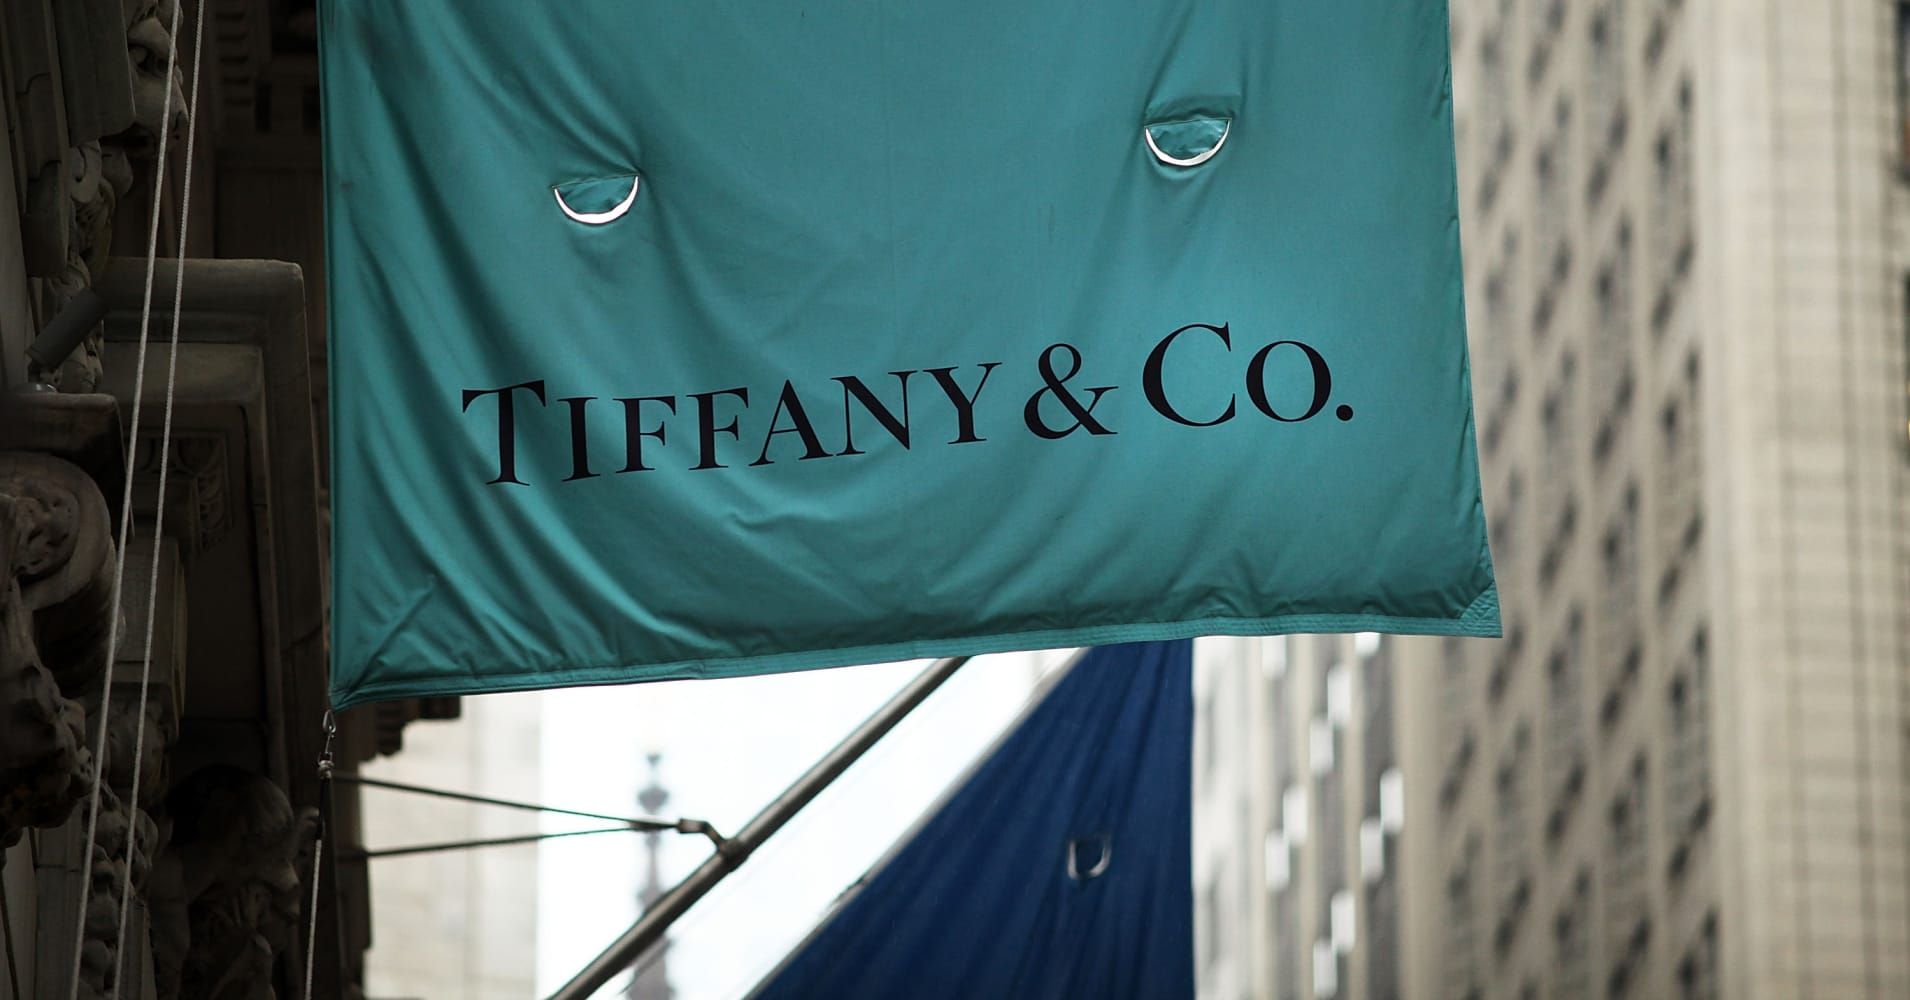 Tiffany stock slumps after sales miss estimates